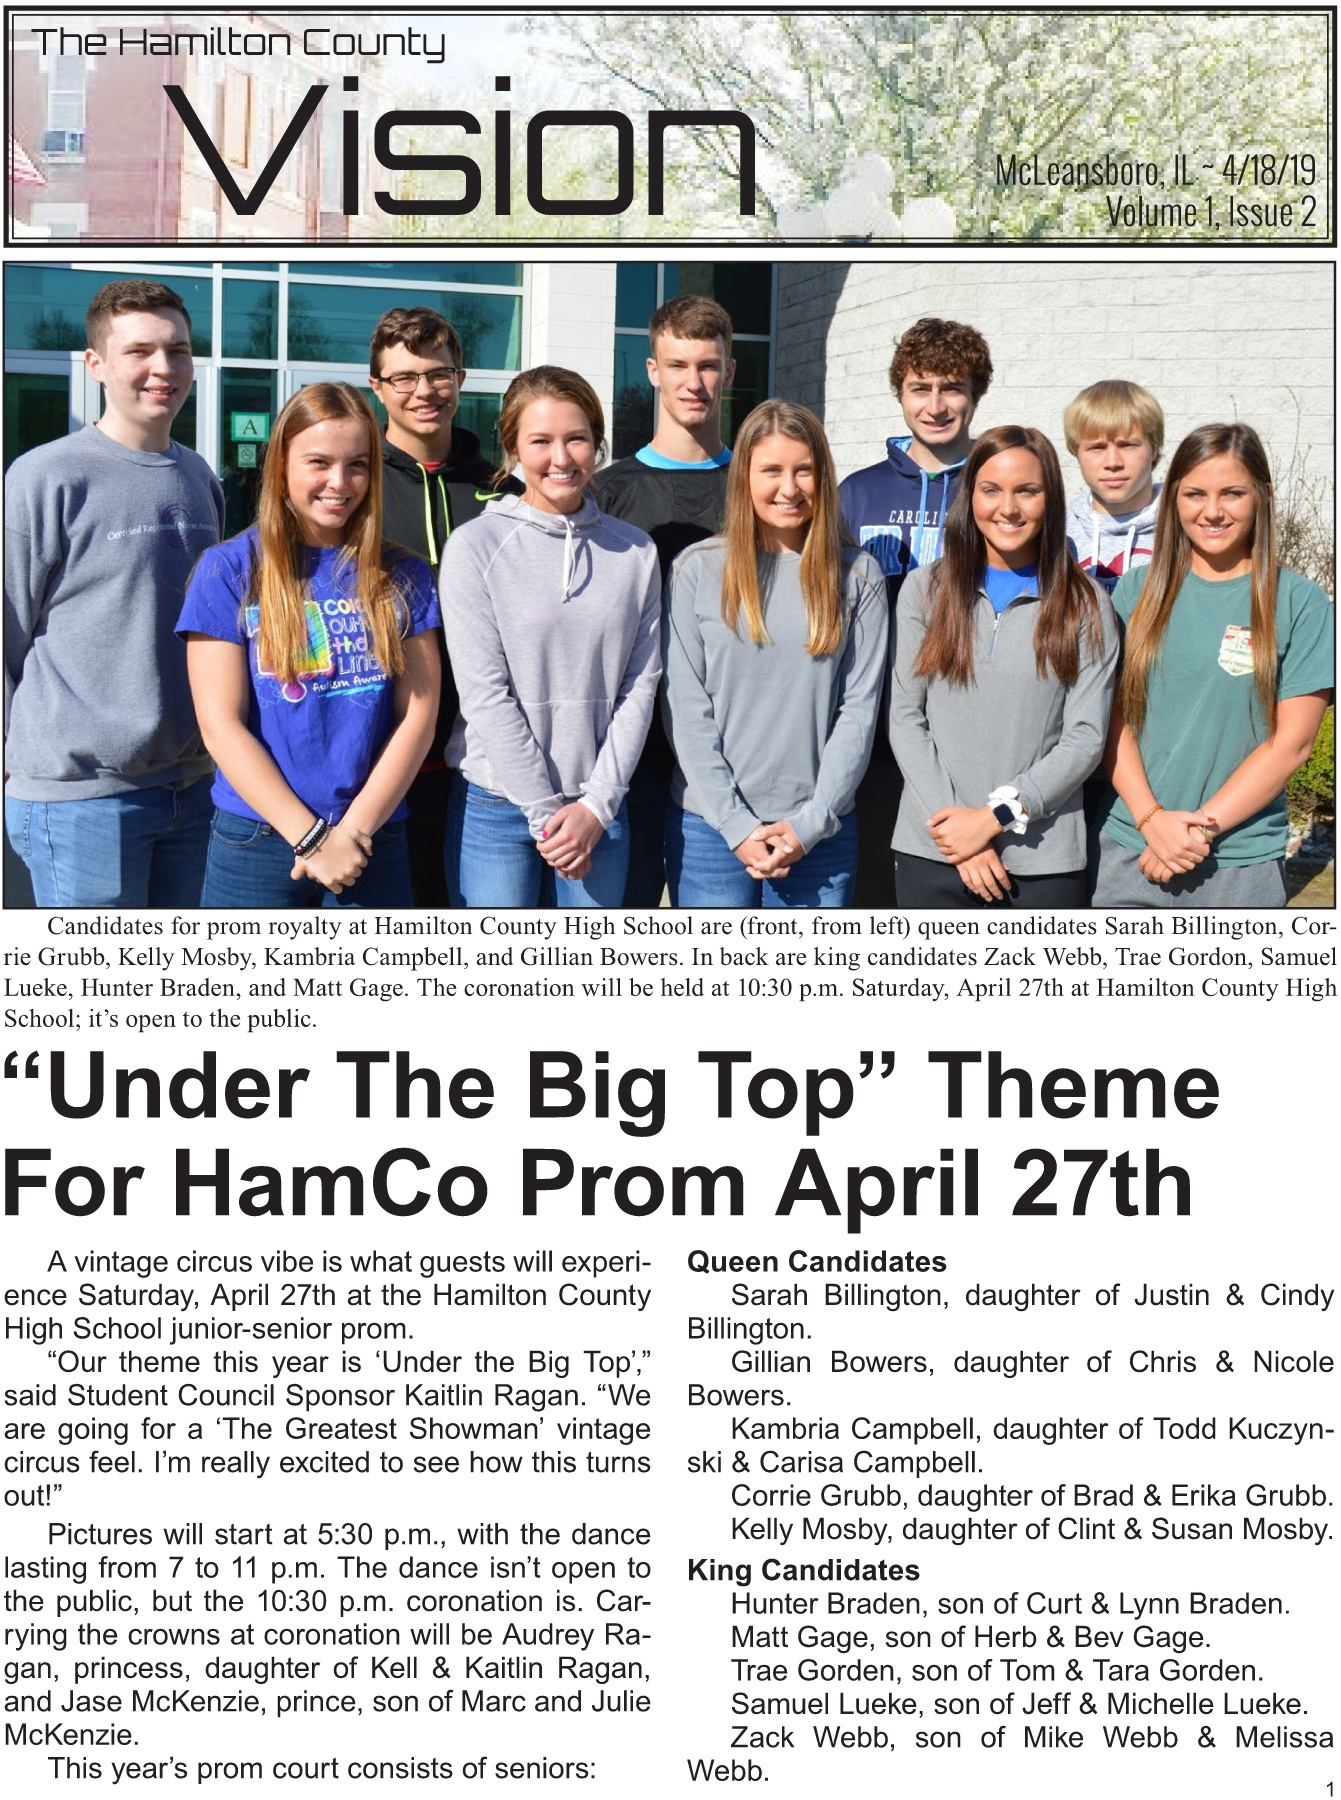 VISION April 18, 2019 Pages 1 - 19 - Text Version | AnyFlip